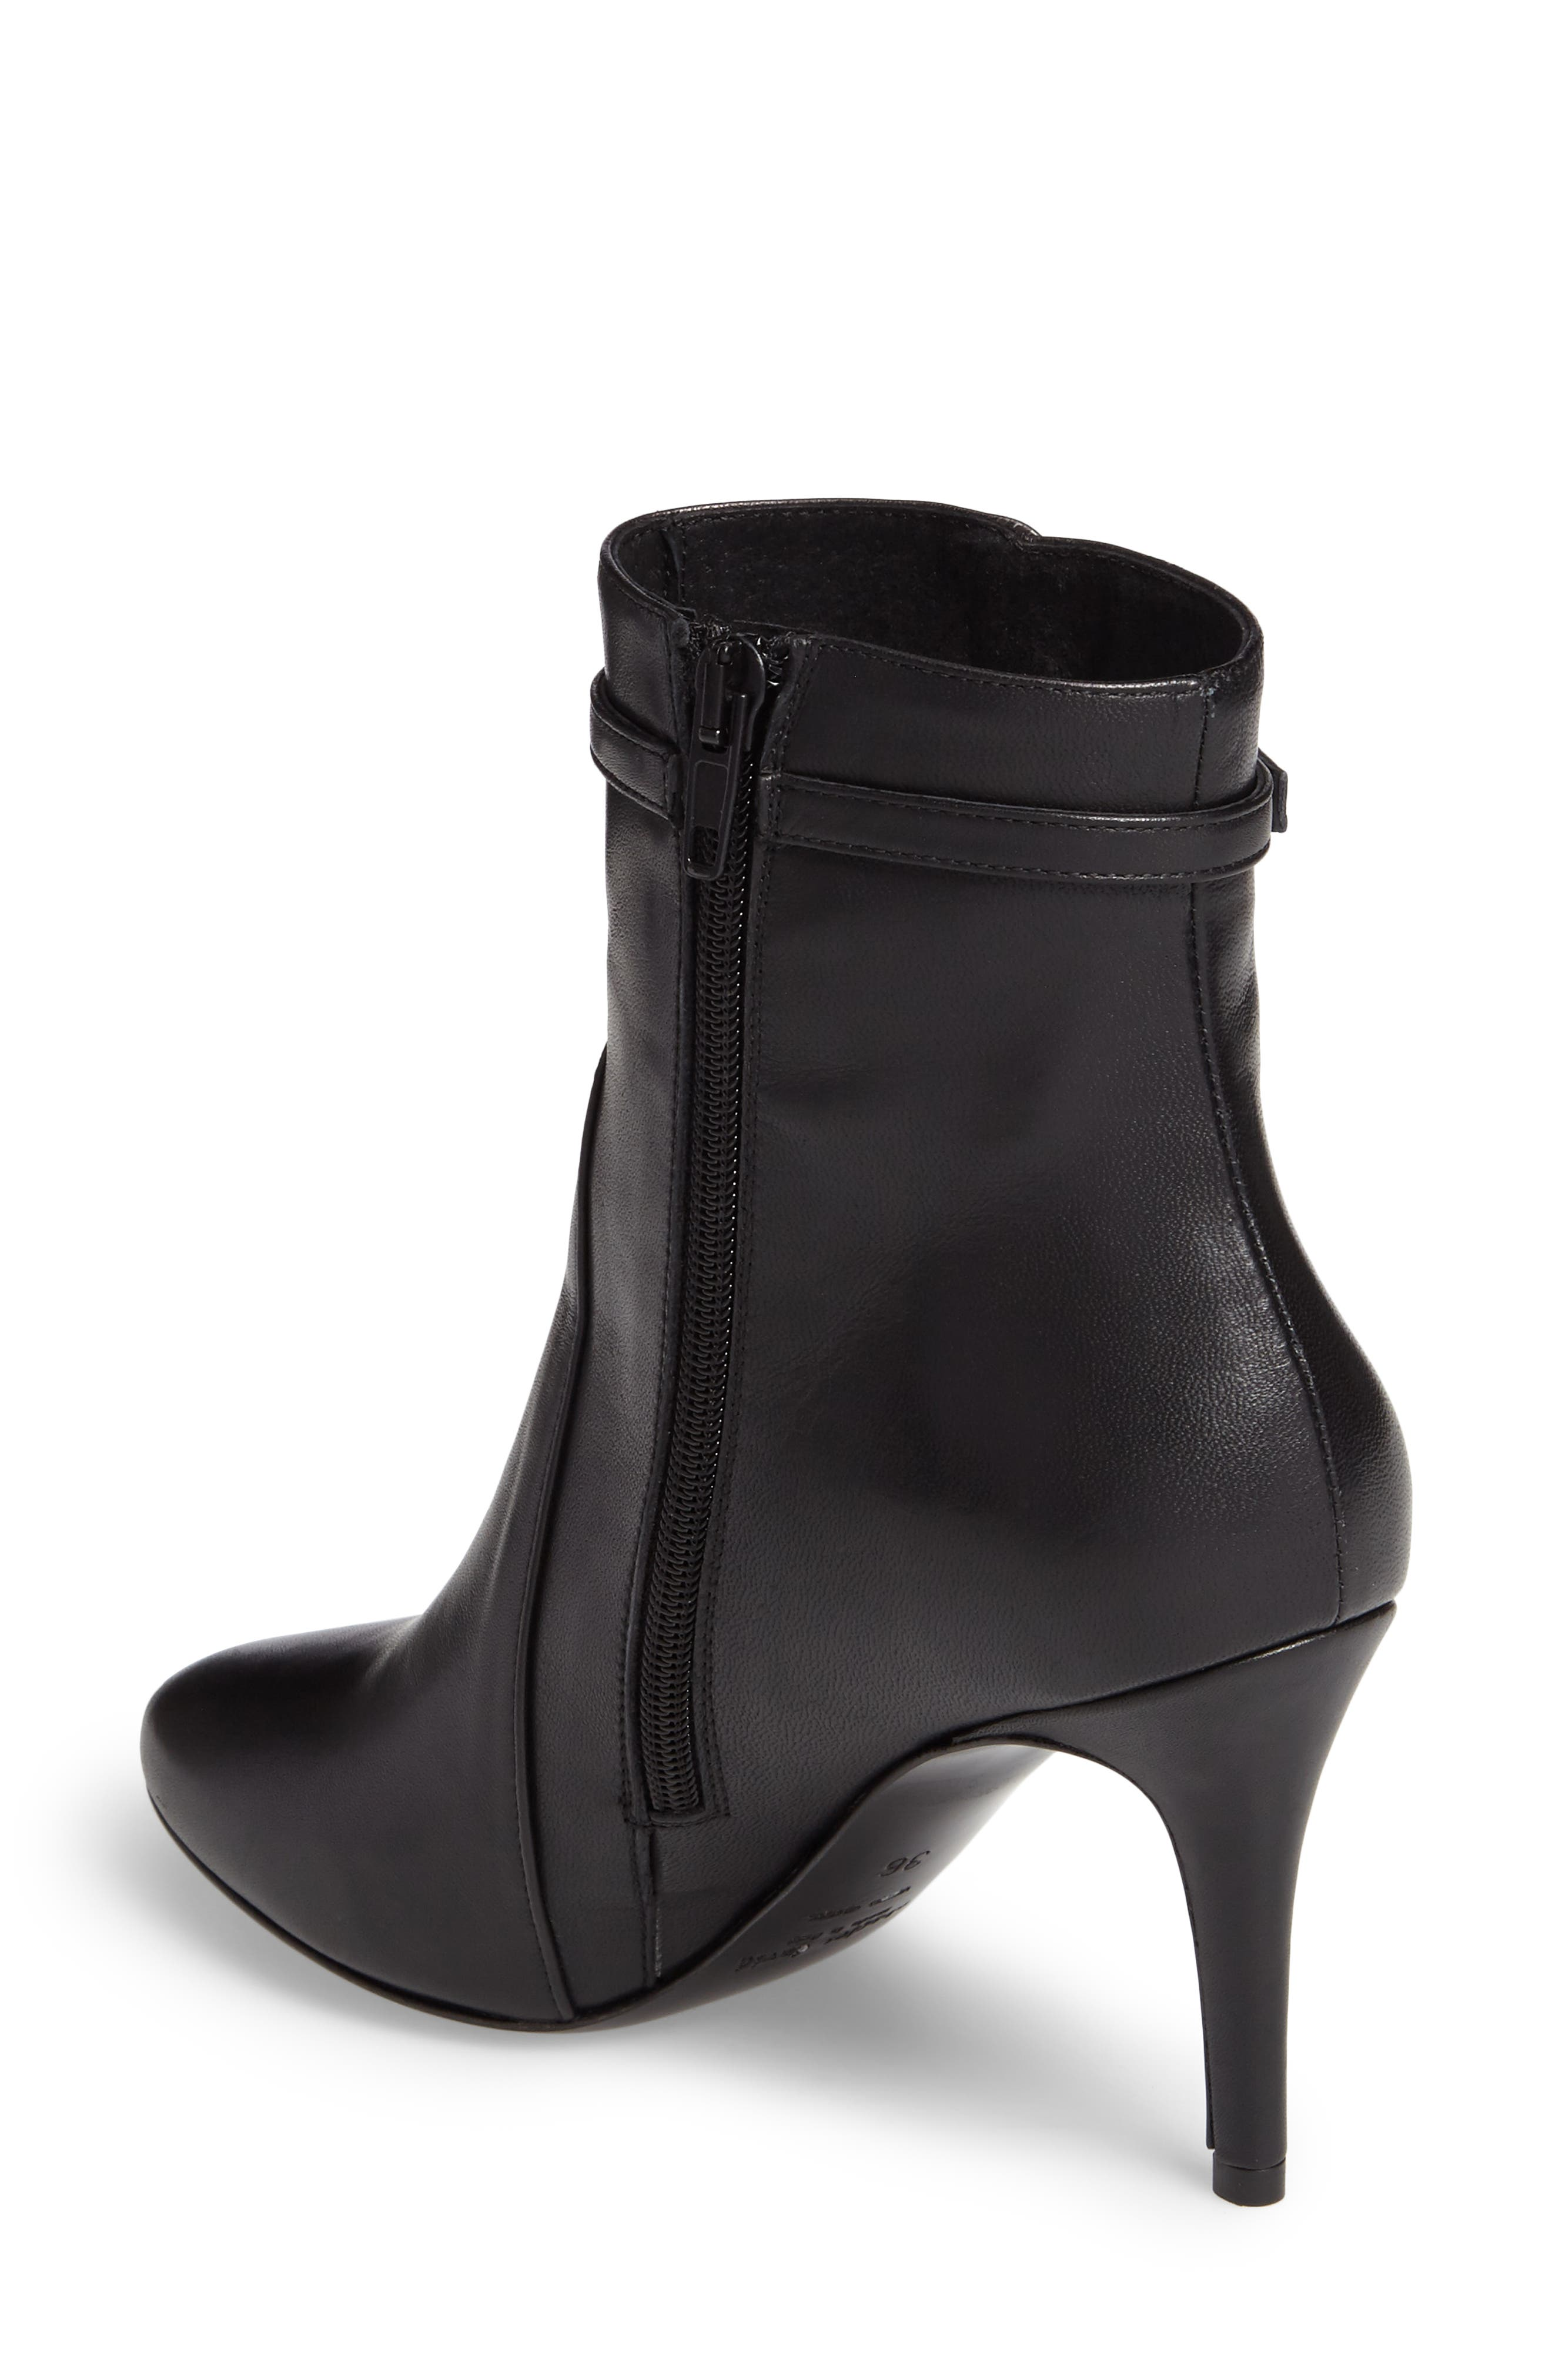 Prism Buckle Strap Bootie,                             Alternate thumbnail 2, color,                             001